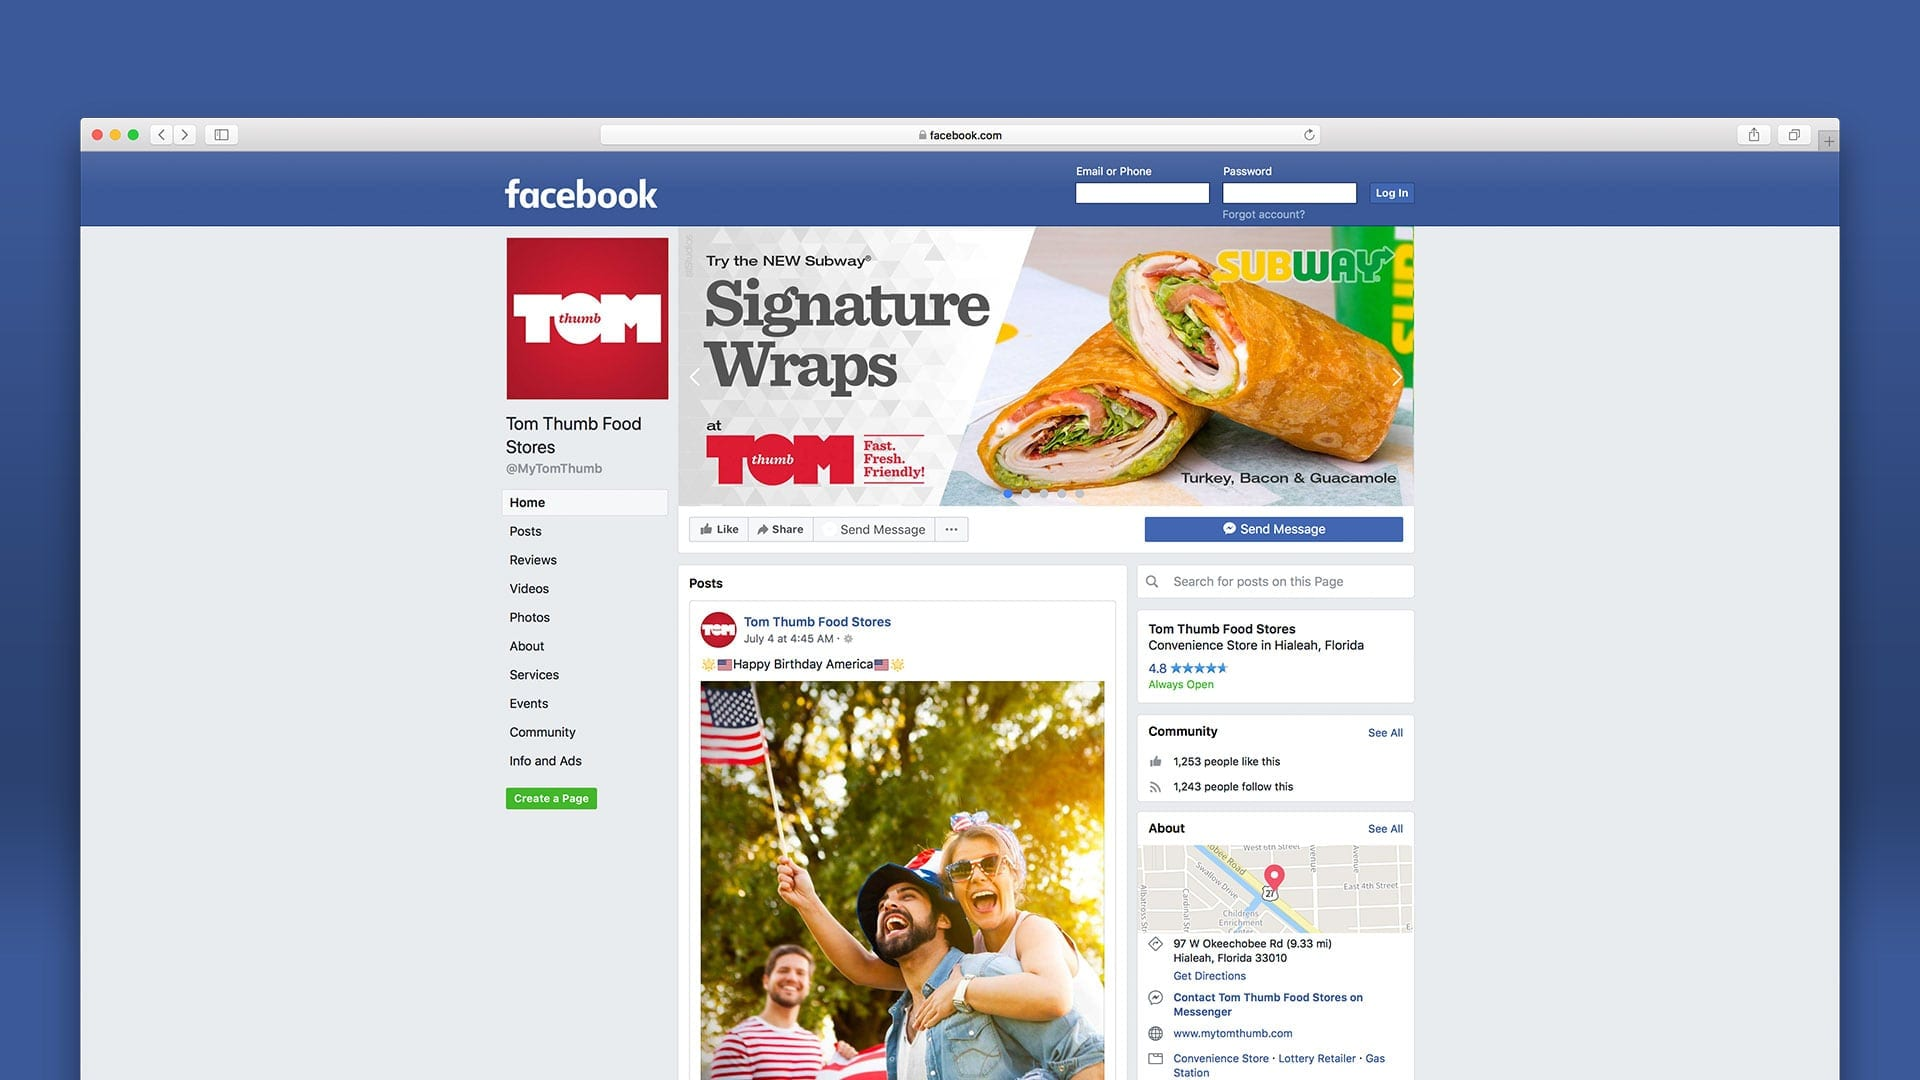 Tom Thumb Food Stores Digital & Social Media Marketing - sliStudios Miami Beach